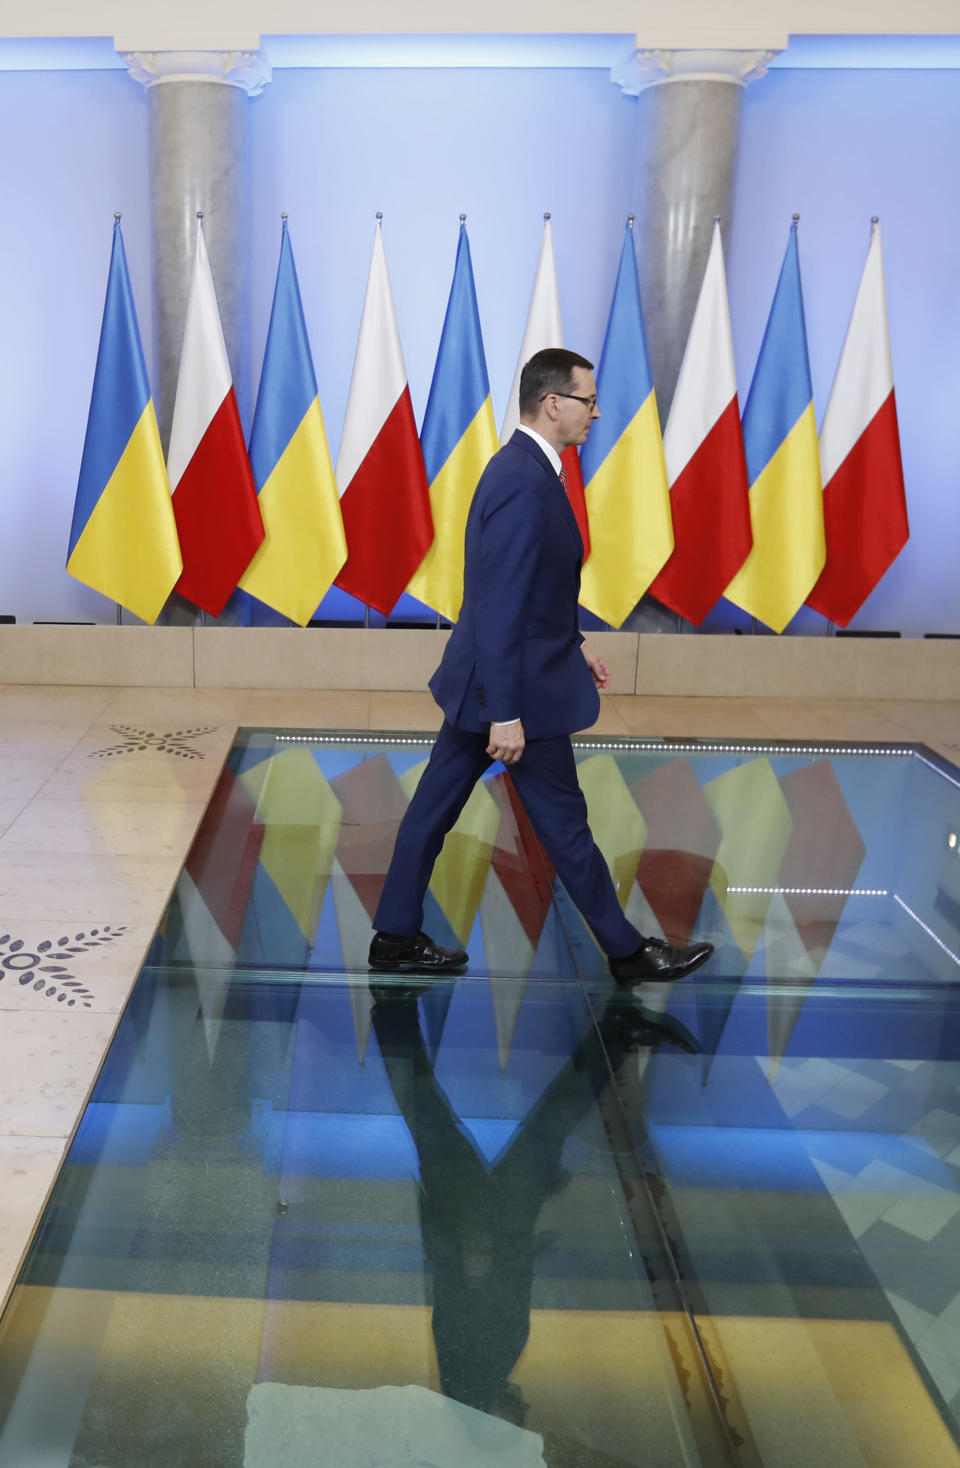 Poland's Prime Minister Mateusz Morawiecki walks to welcome Ukraine's President Volodymyr Zelenskiy as they meet in Warsaw, Poland, Saturday, Aug. 31, 2019. Zelenskiy is in Warsaw with members of his new Cabinet and will attend ceremonies marking 80 years of the start of World War II on Sunday. (AP Photo/Petr David Josek)